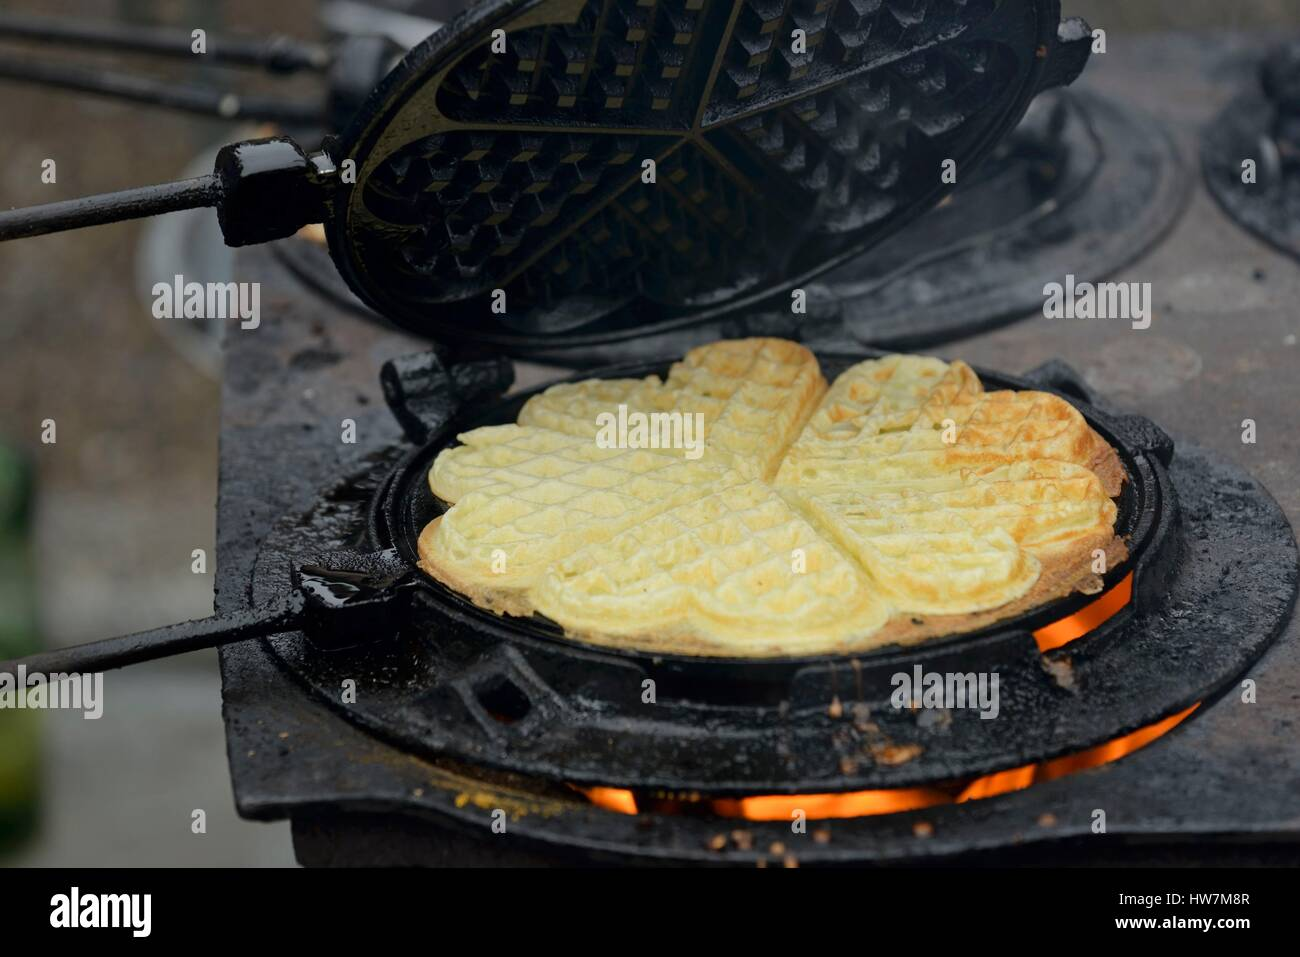 France, Vosges, Girmont Val d Ajol, Foire aux Andouilles, cooking waffles with old, stove 4 holes and mold - Stock Image